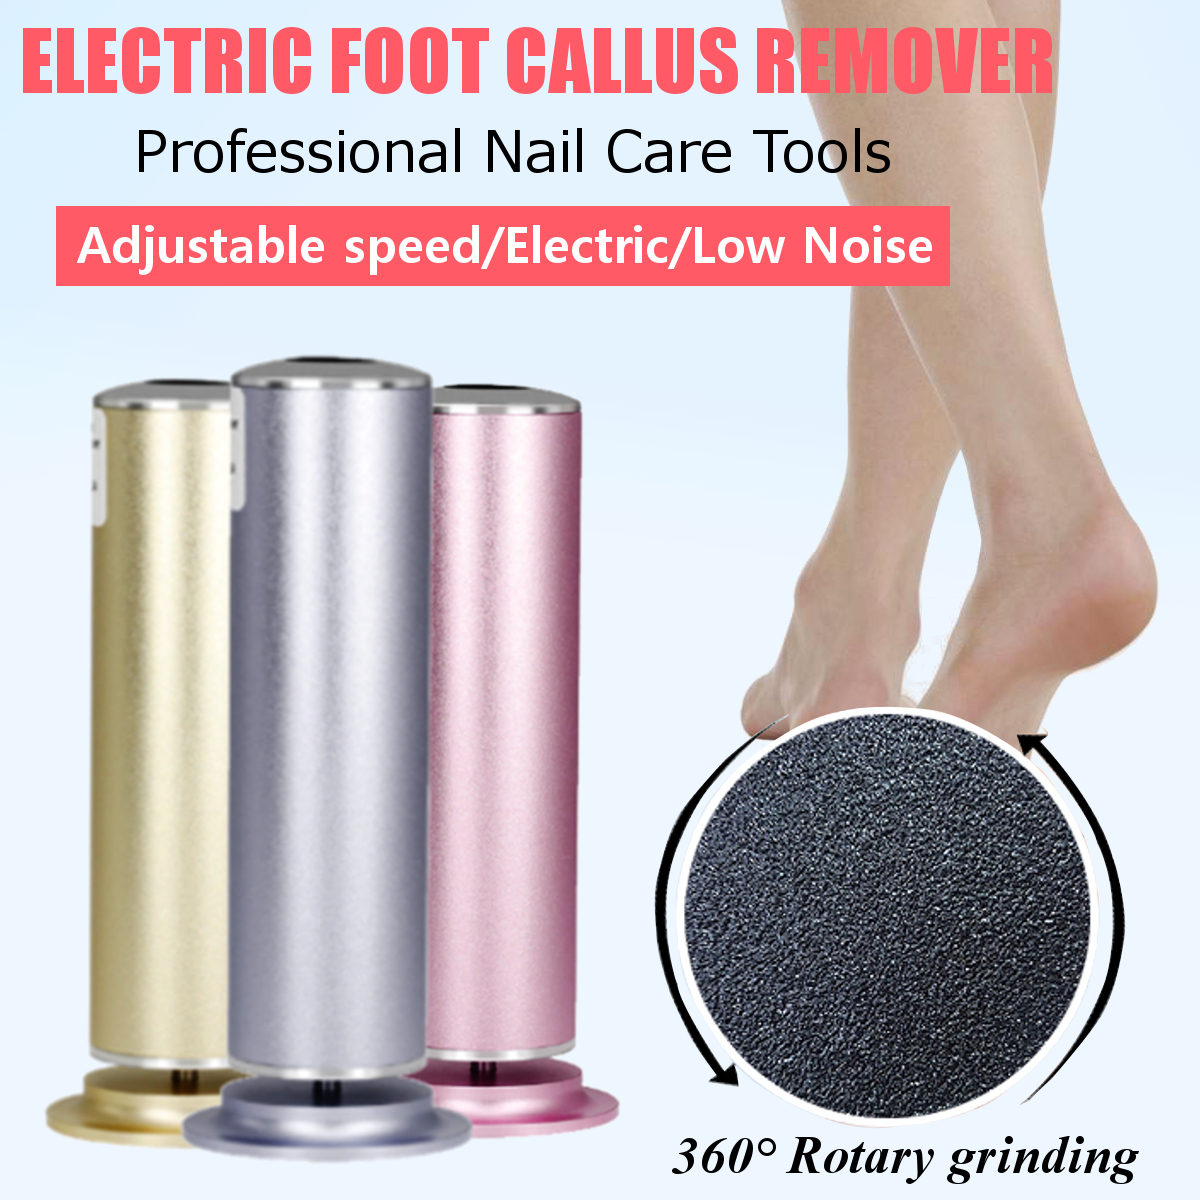 Electric Foot File Foot Care Tool Smooth Pedicure Device Grinding Foot Callus Dead Cuticle Skin Remover Exfoliating MachineElectric Foot File Foot Care Tool Smooth Pedicure Device Grinding Foot Callus Dead Cuticle Skin Remover Exfoliating Machine